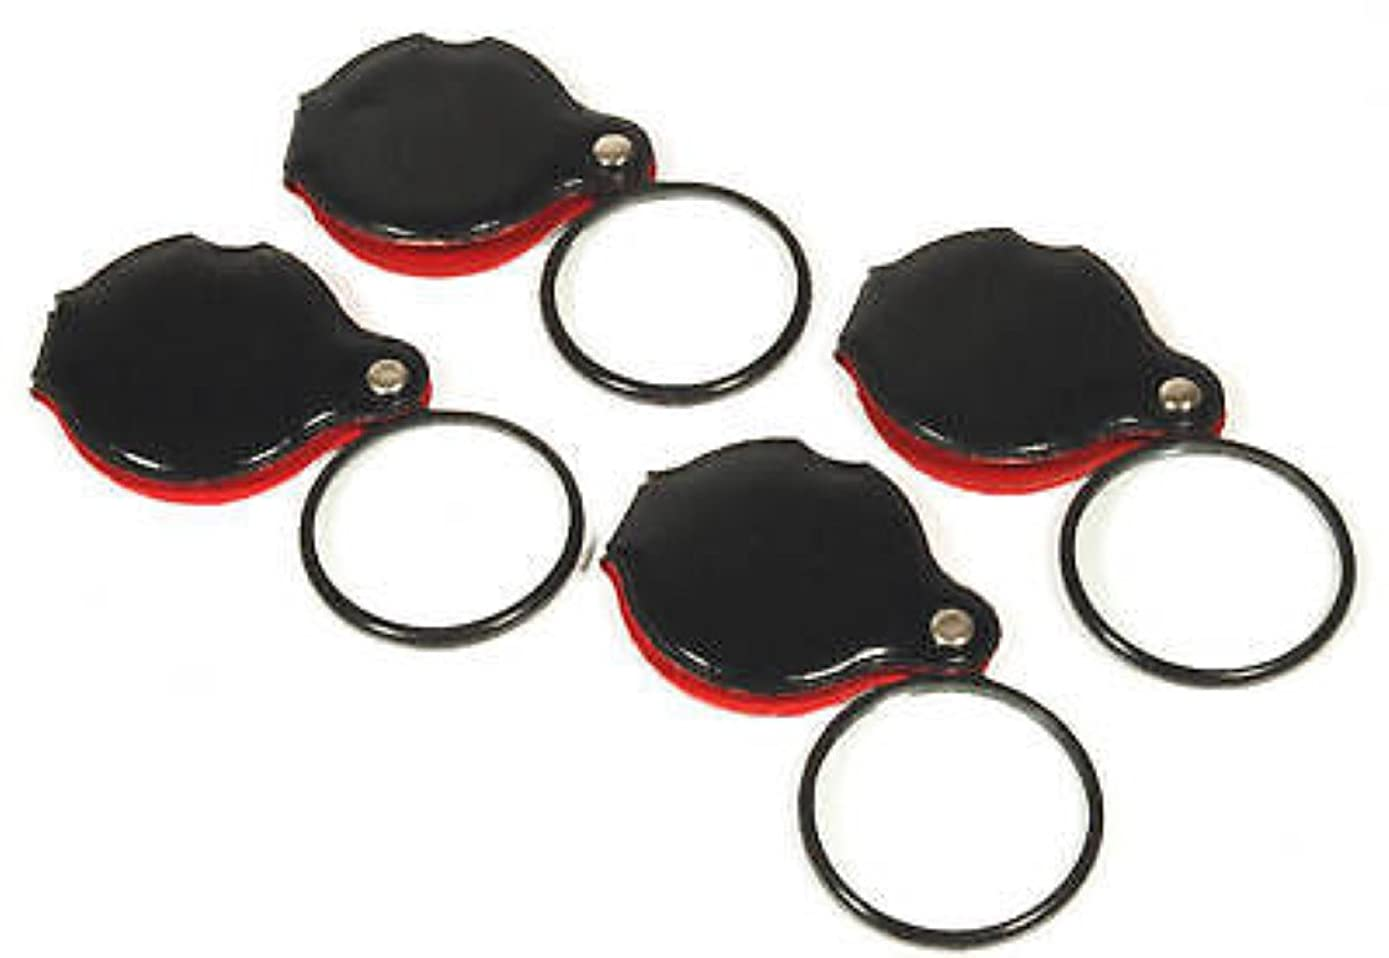 4 8X JEWELERS LOUPE MAGNIFIER MAGNIFYING POCKET